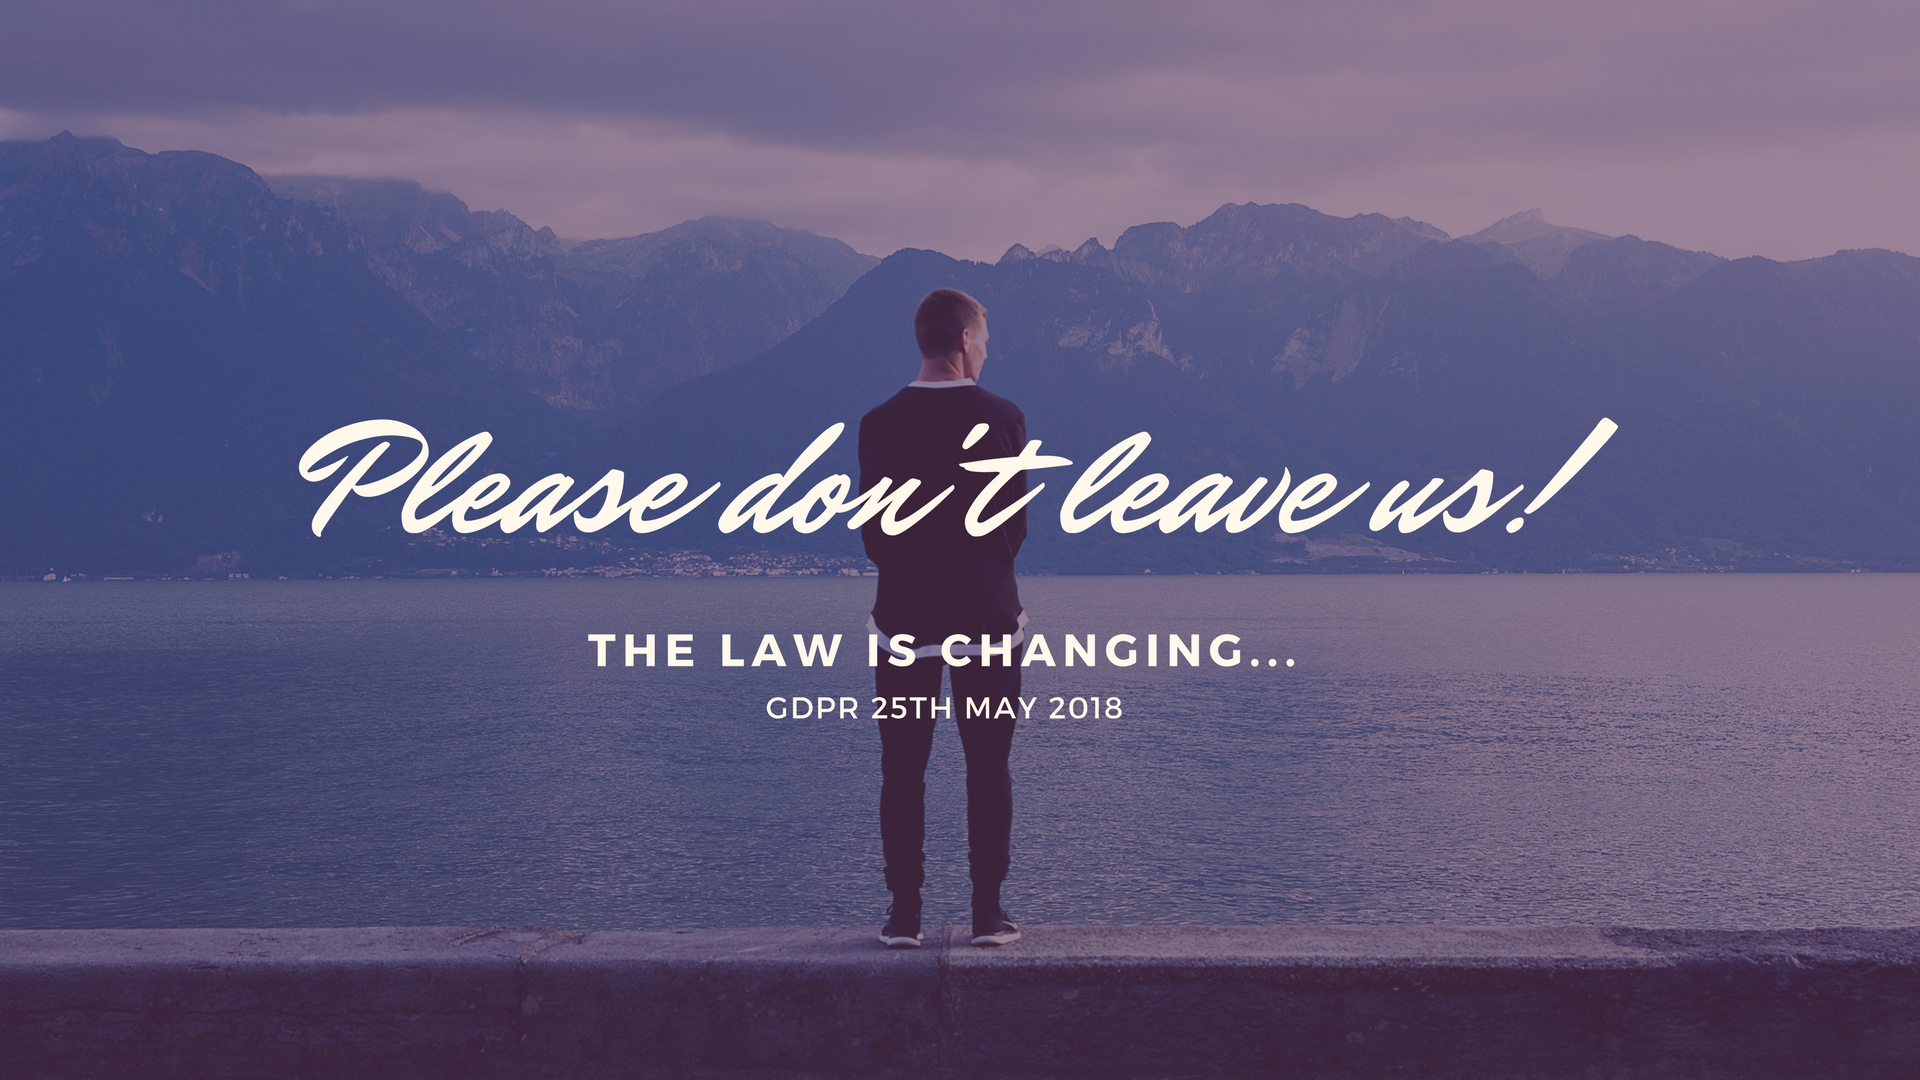 The law is changing…